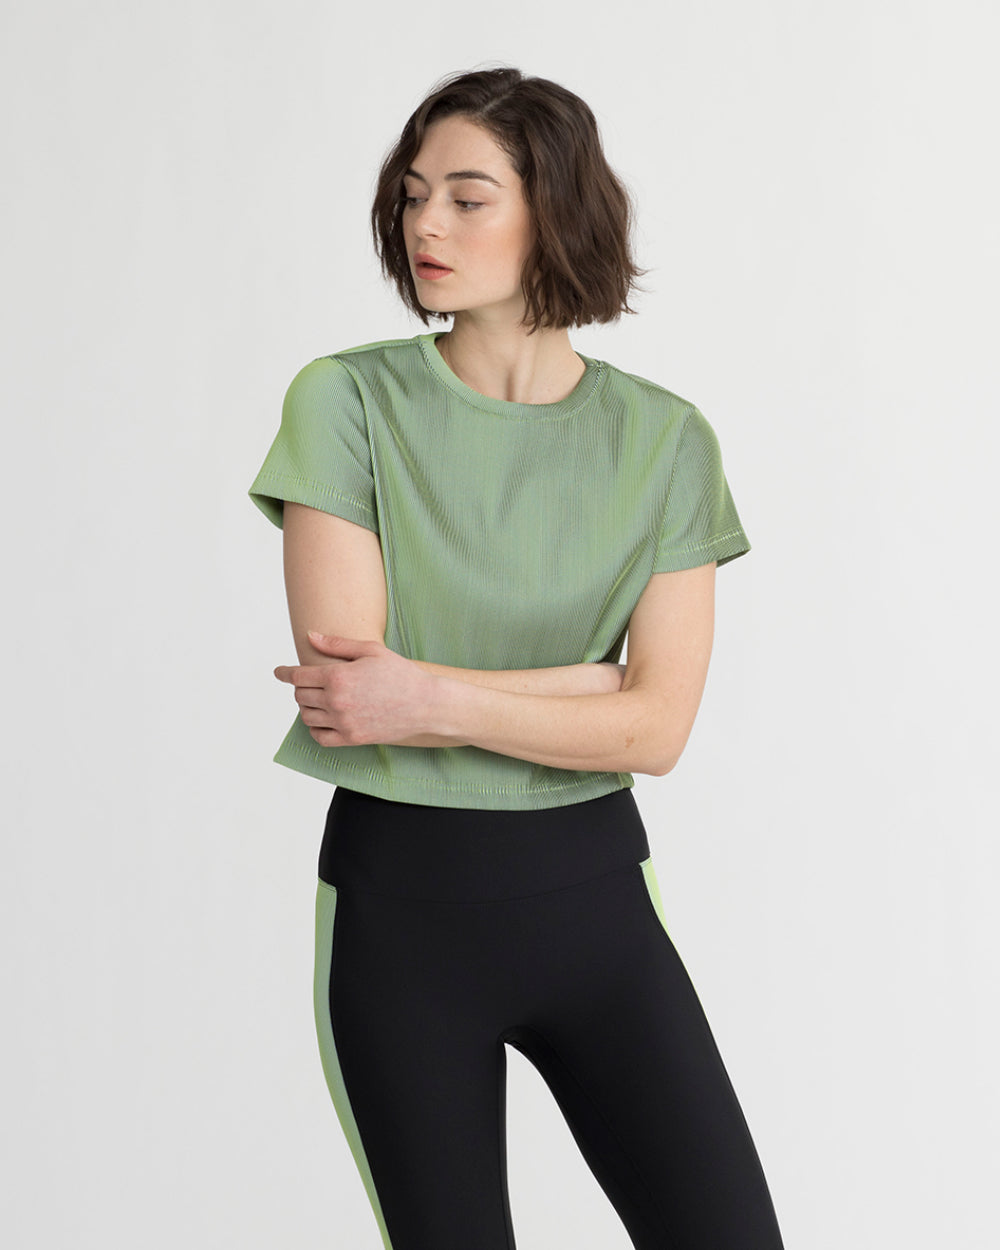 MELFORD TOP IRIDESCENT LIME GREEN